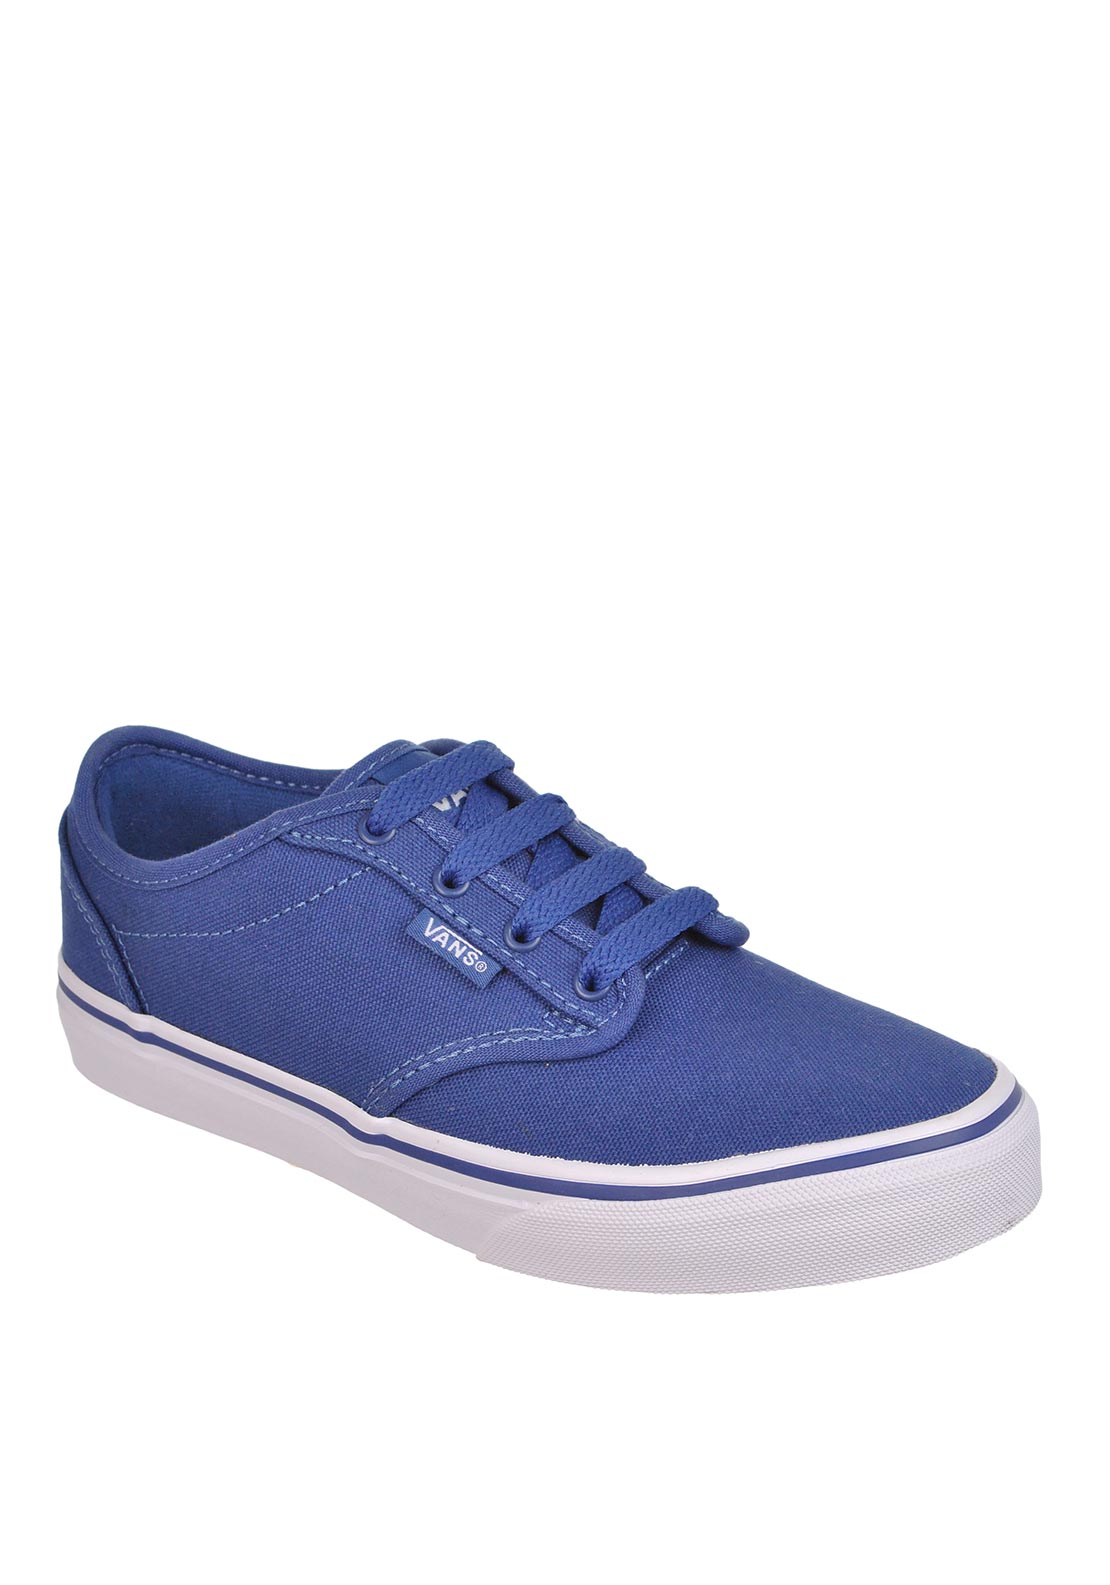 Vans Kids Classic Canvas Trainers, Navy Blue